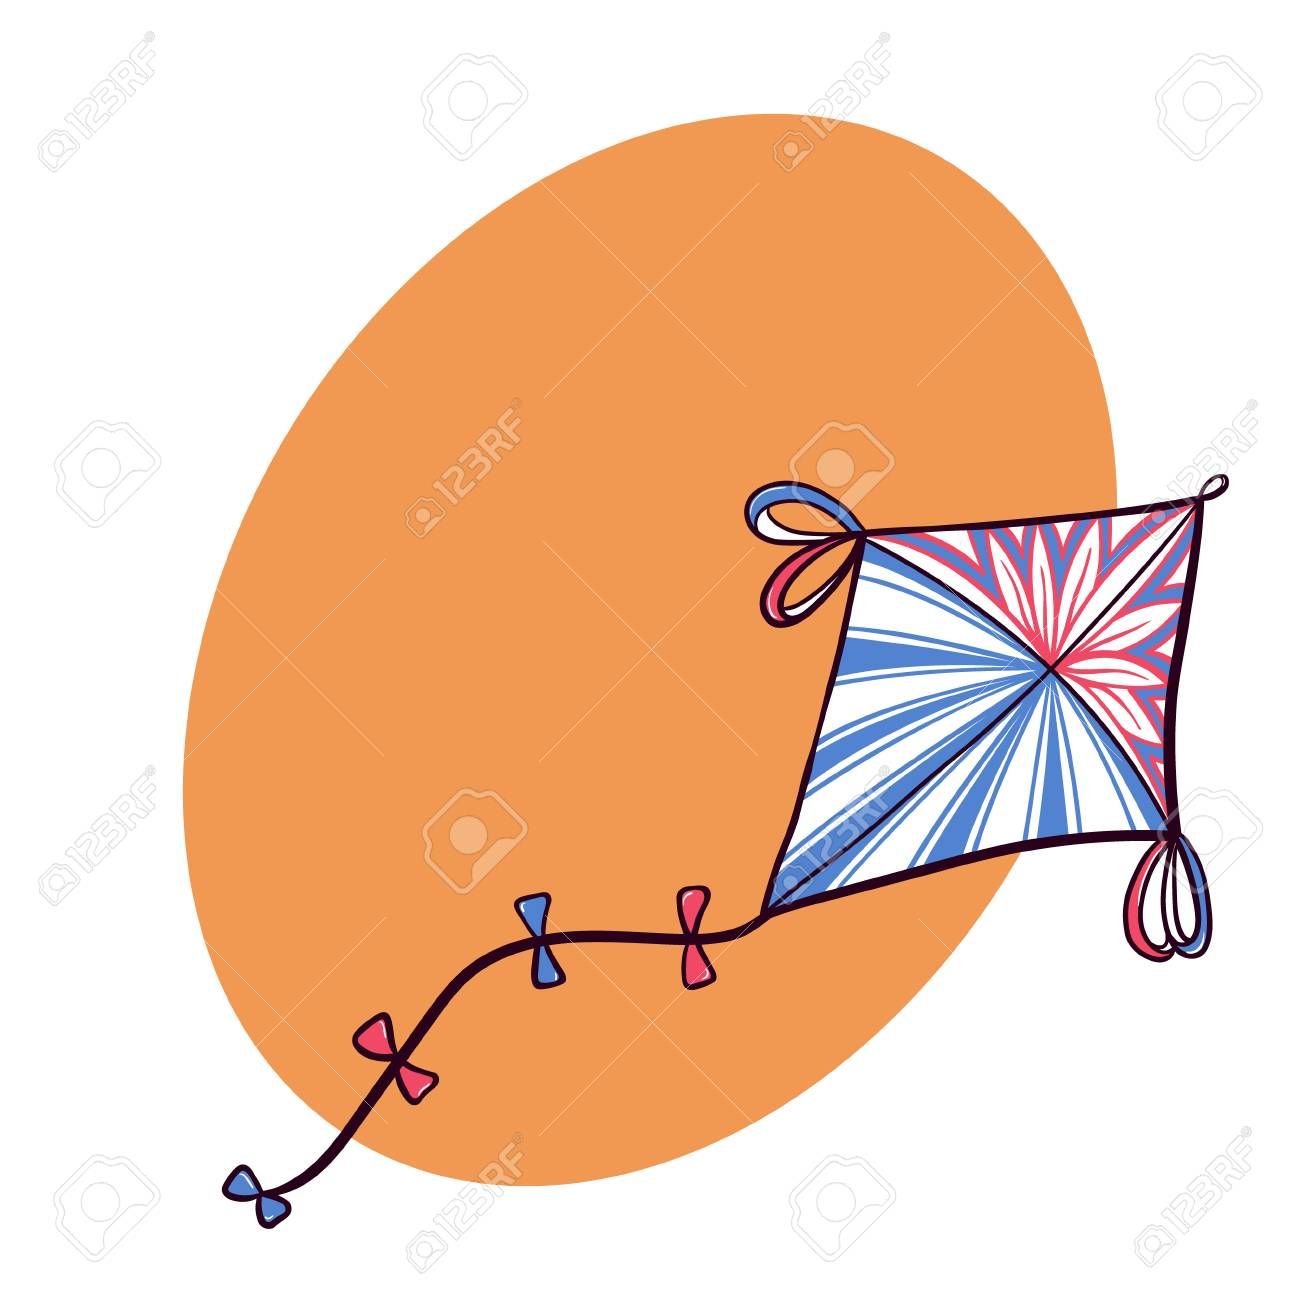 Hand Drawn Diamond Kite With Graphic Design Royalty Free Cliparts